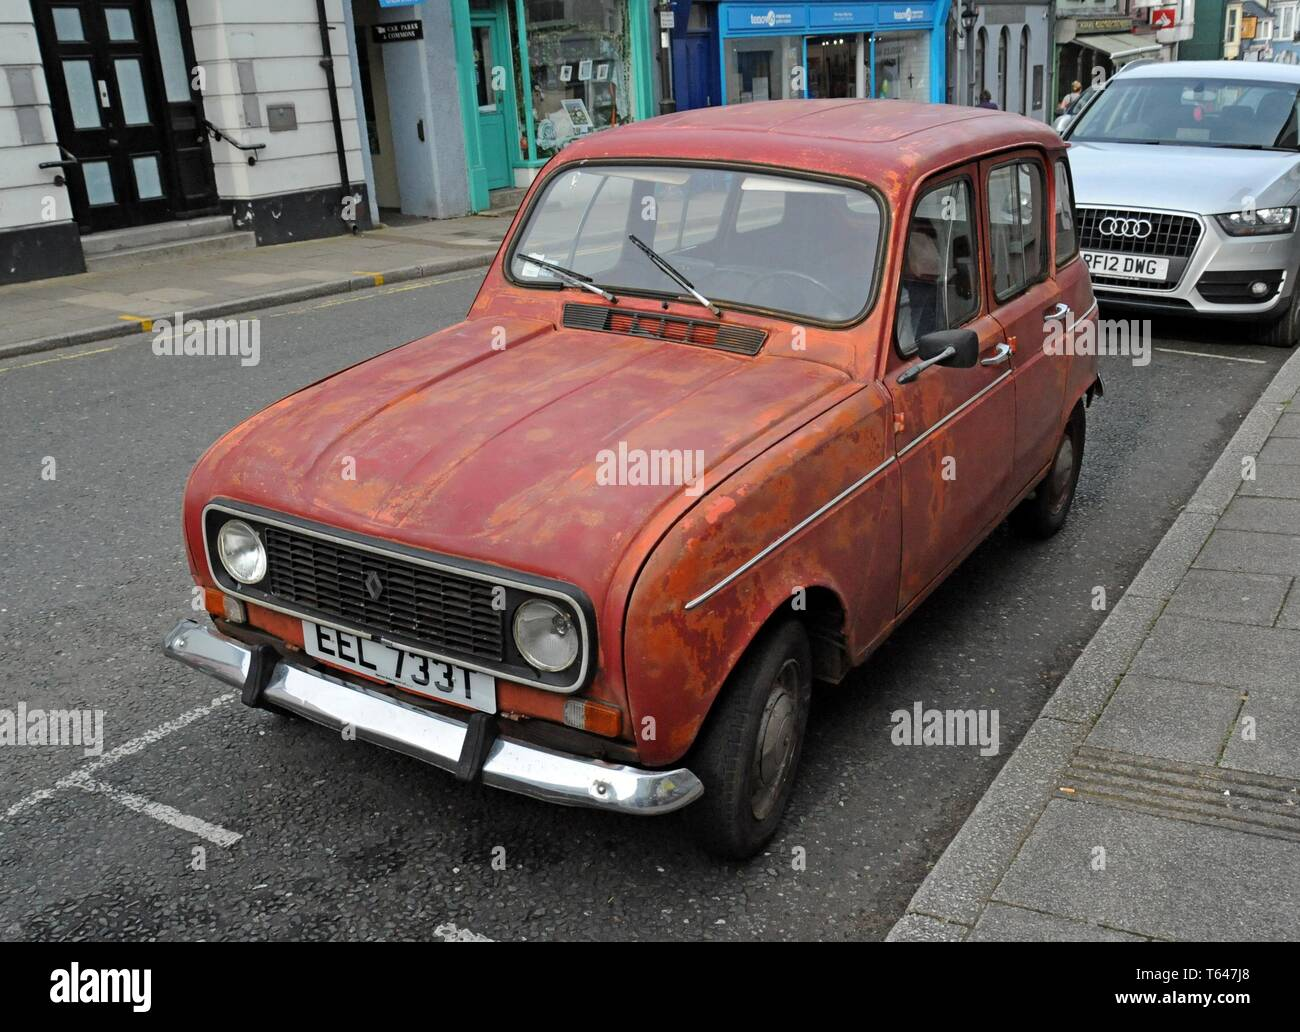 hight resolution of a battered and scruffy renault 4 classic car with peeling paint